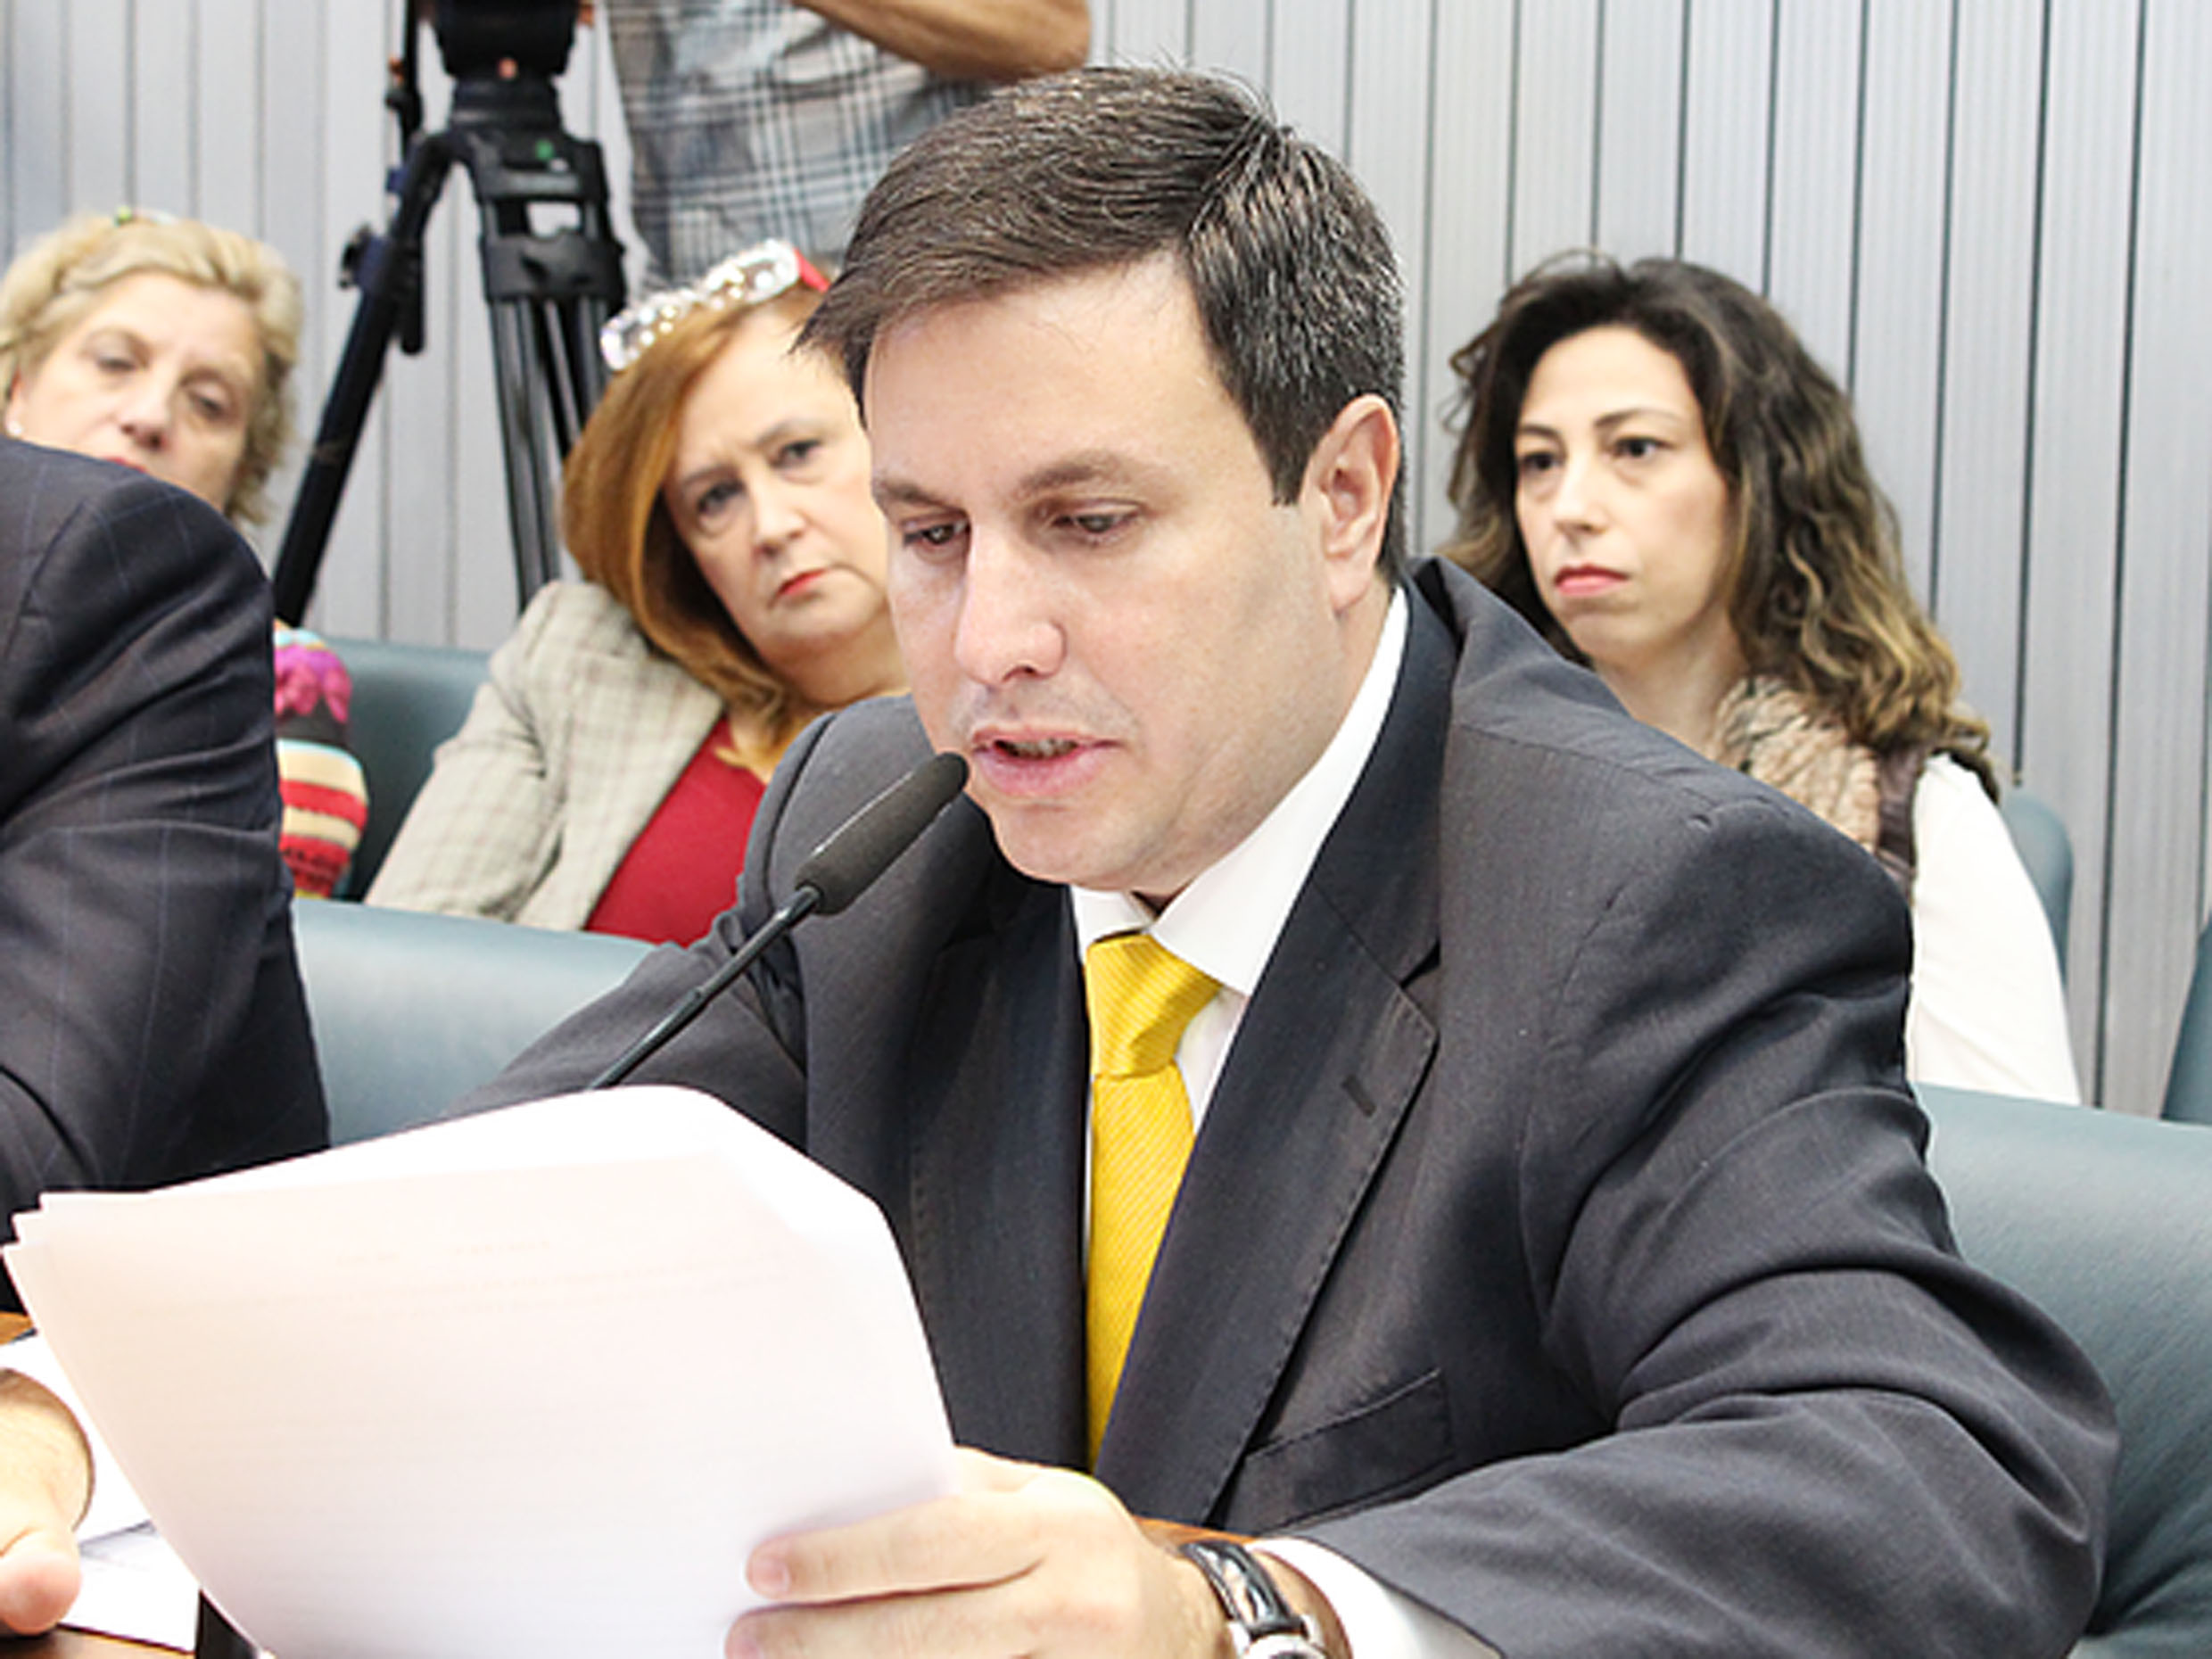 André Soares<a style='float:right' href='https://www3.al.sp.gov.br/repositorio/noticia/N-06-2016/fg190124.jpg' target=_blank><img src='/_img/material-file-download-white.png' width='14px' alt='Clique para baixar a imagem'></a>